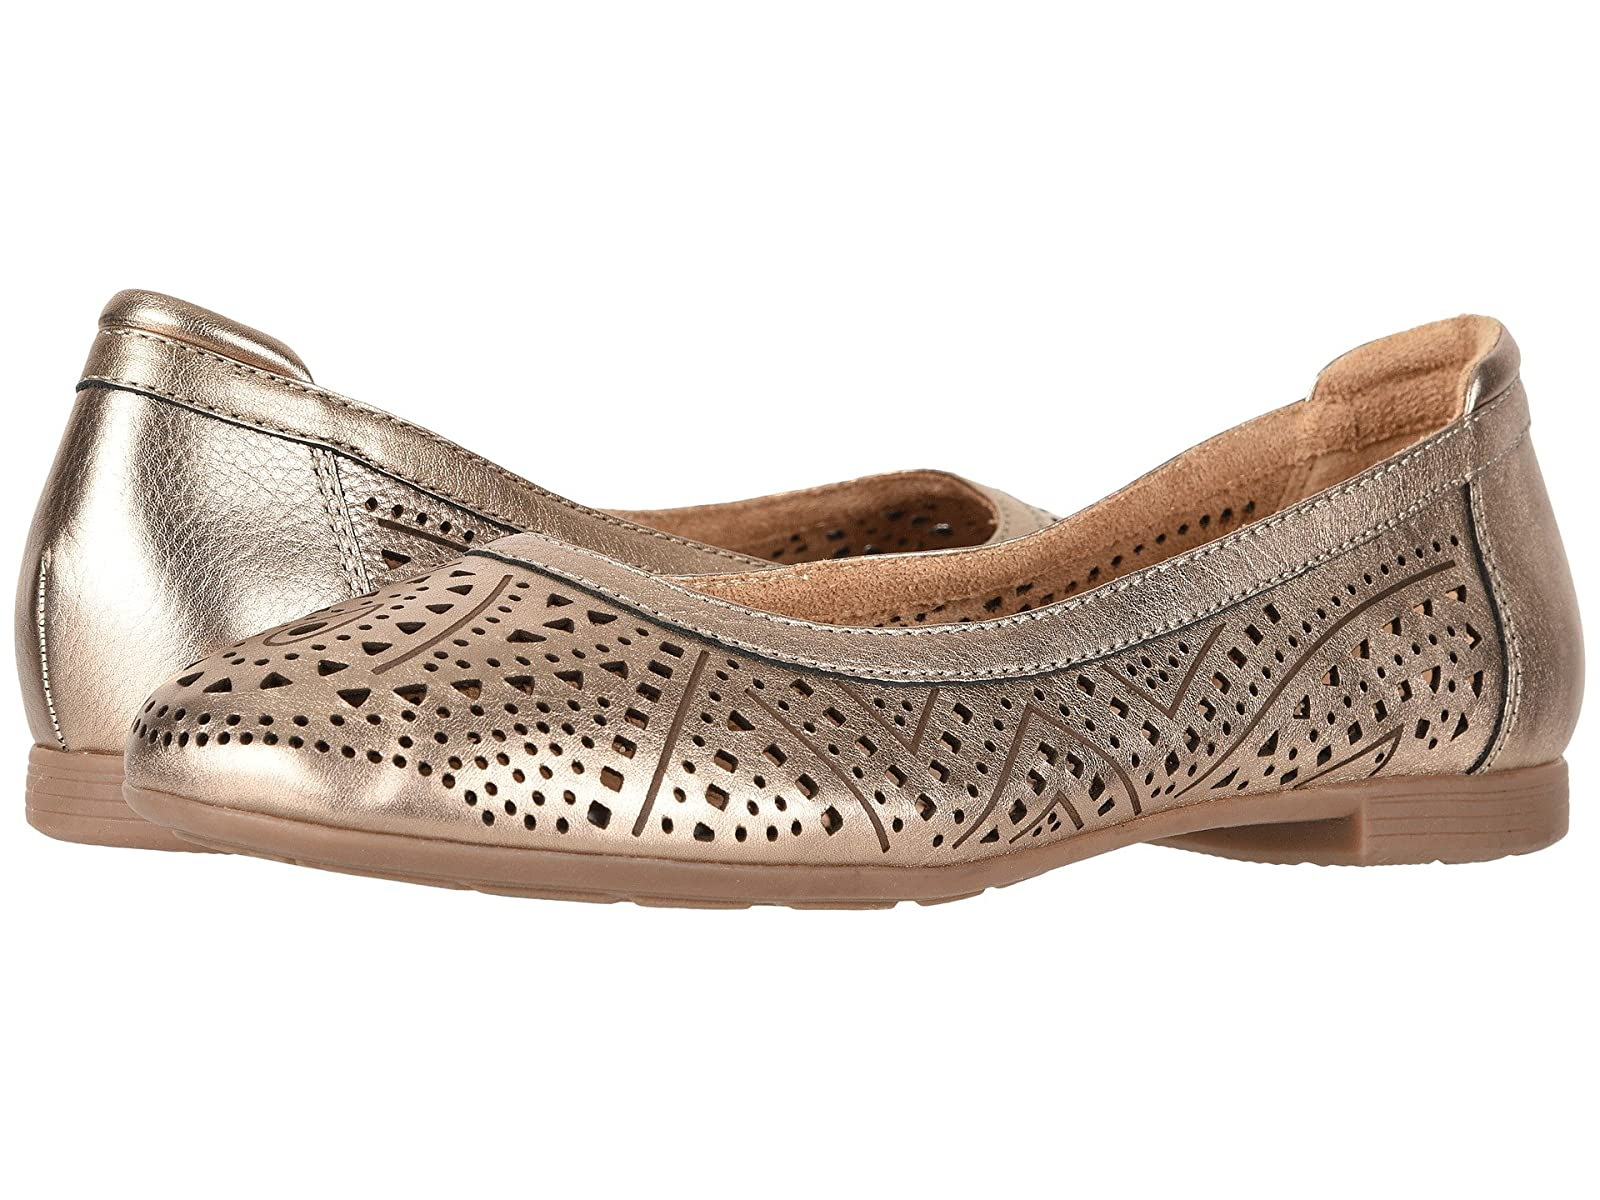 Earth RoyaleCheap and distinctive eye-catching shoes